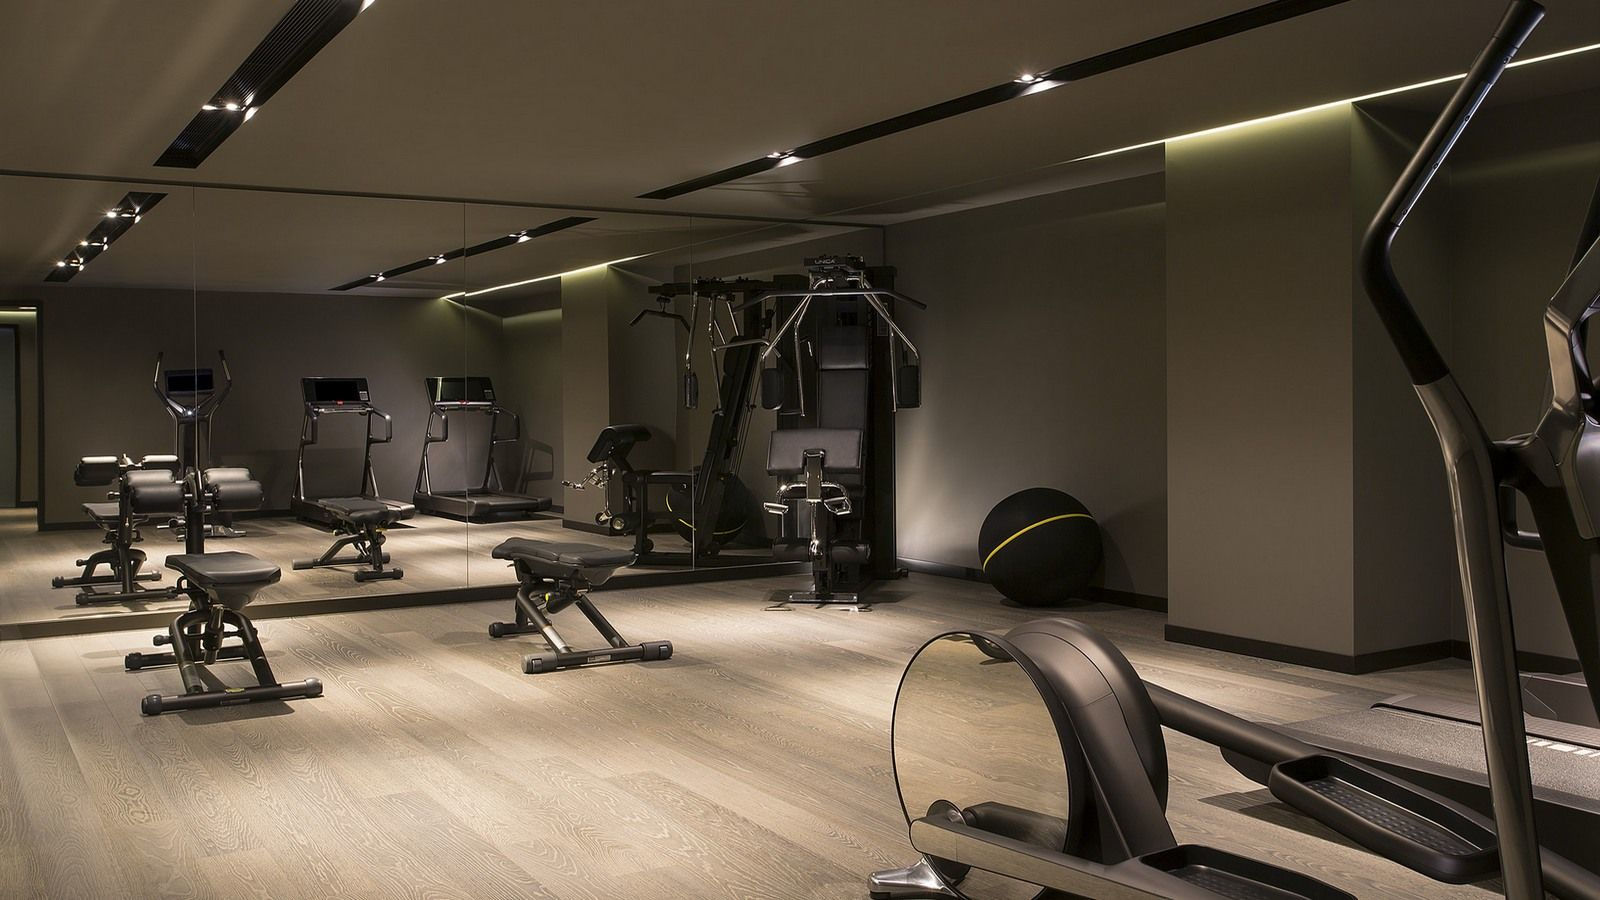 Fitness center falisia resort portopiccolo hotel for Equipement hotel